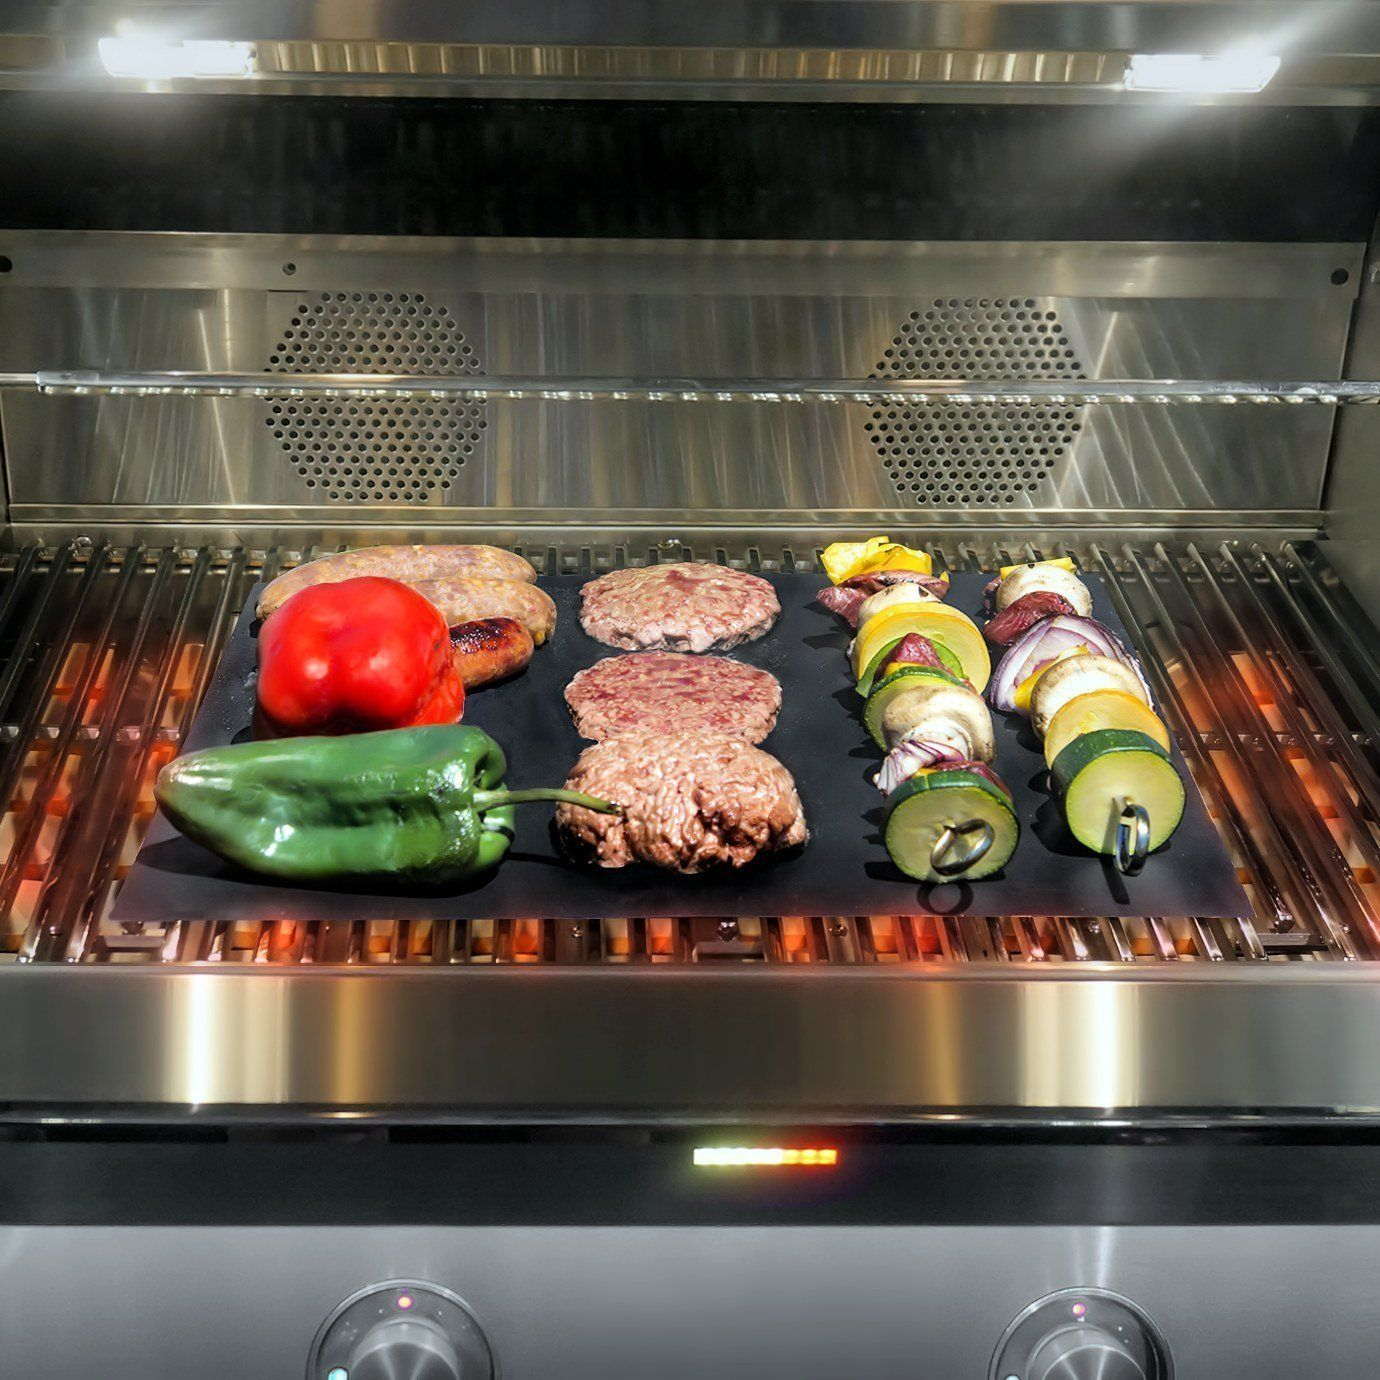 Pin On Silicone Baking Mat Bbq Cooking Kitchen Accessory